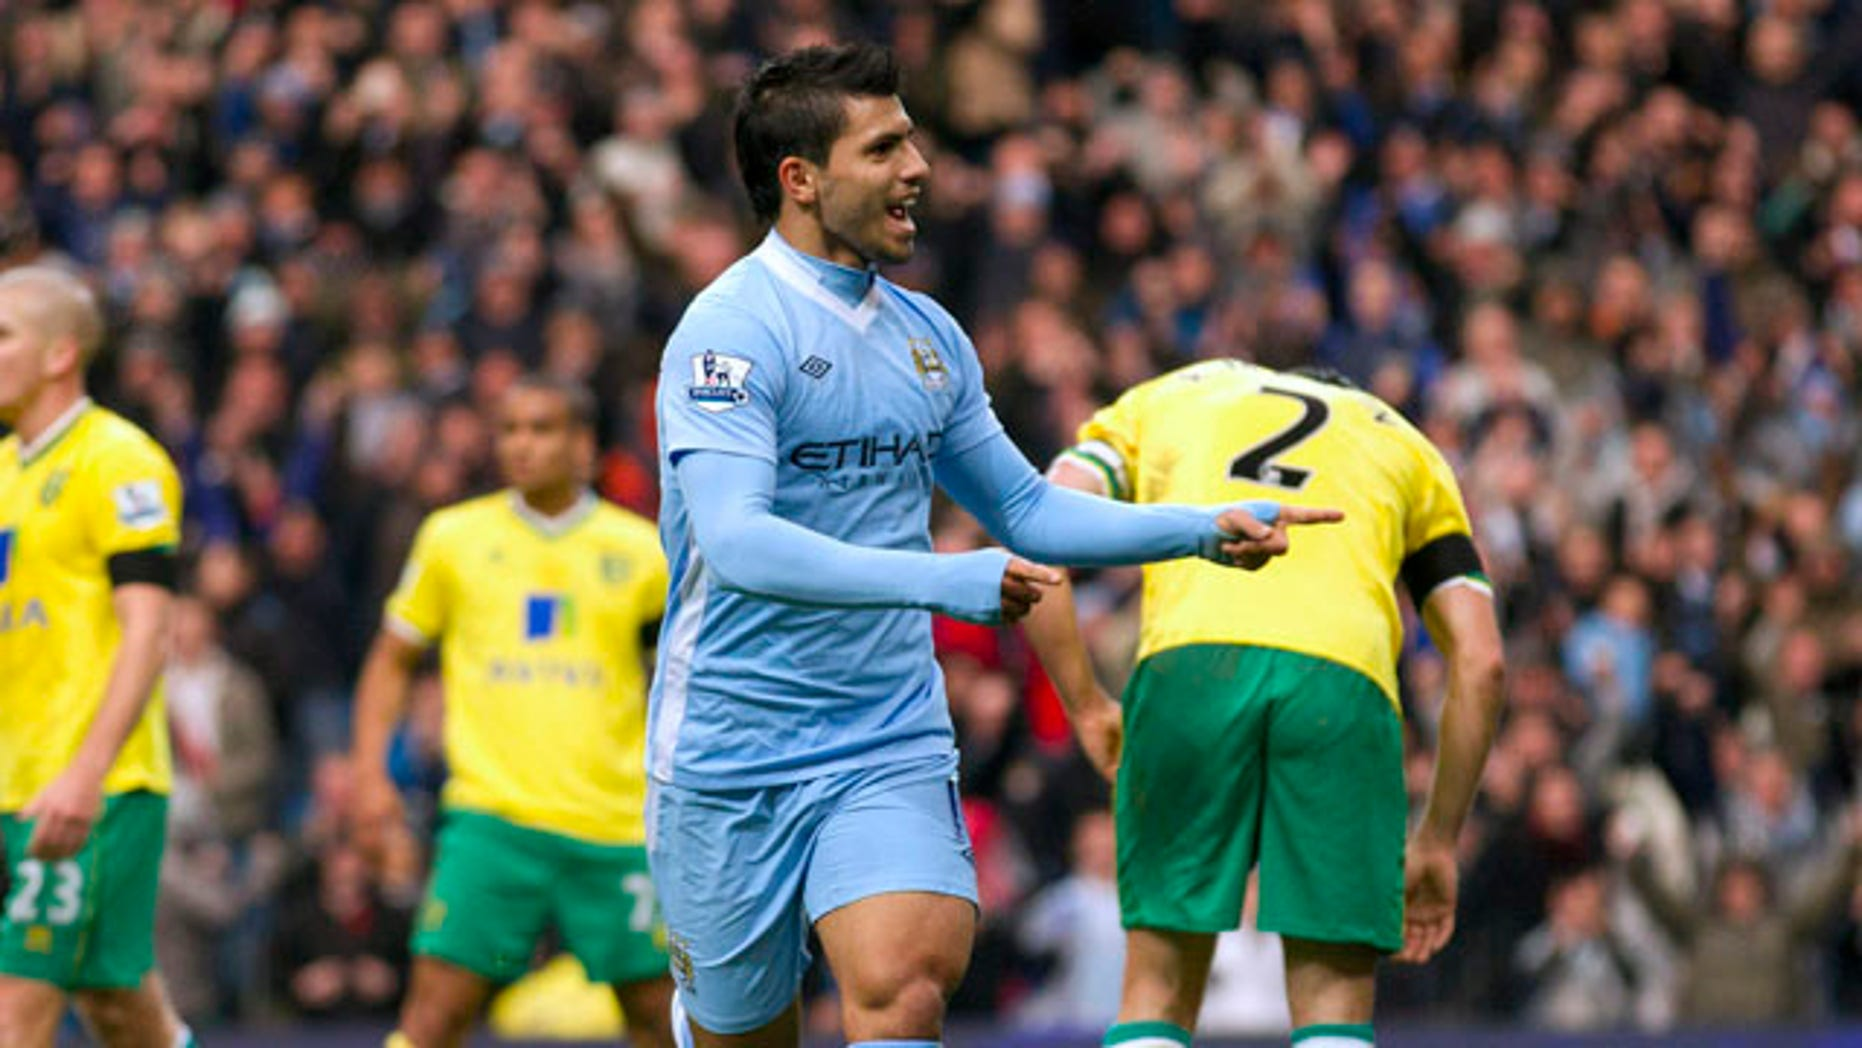 Manchester City's Sergio Aguero, center right, celebrates after scoring against Norwich during their English Premier League soccer match at The Etihad Stadium, Manchester, England, Saturday Dec. 3, 2011. (AP Photo/Jon Super)